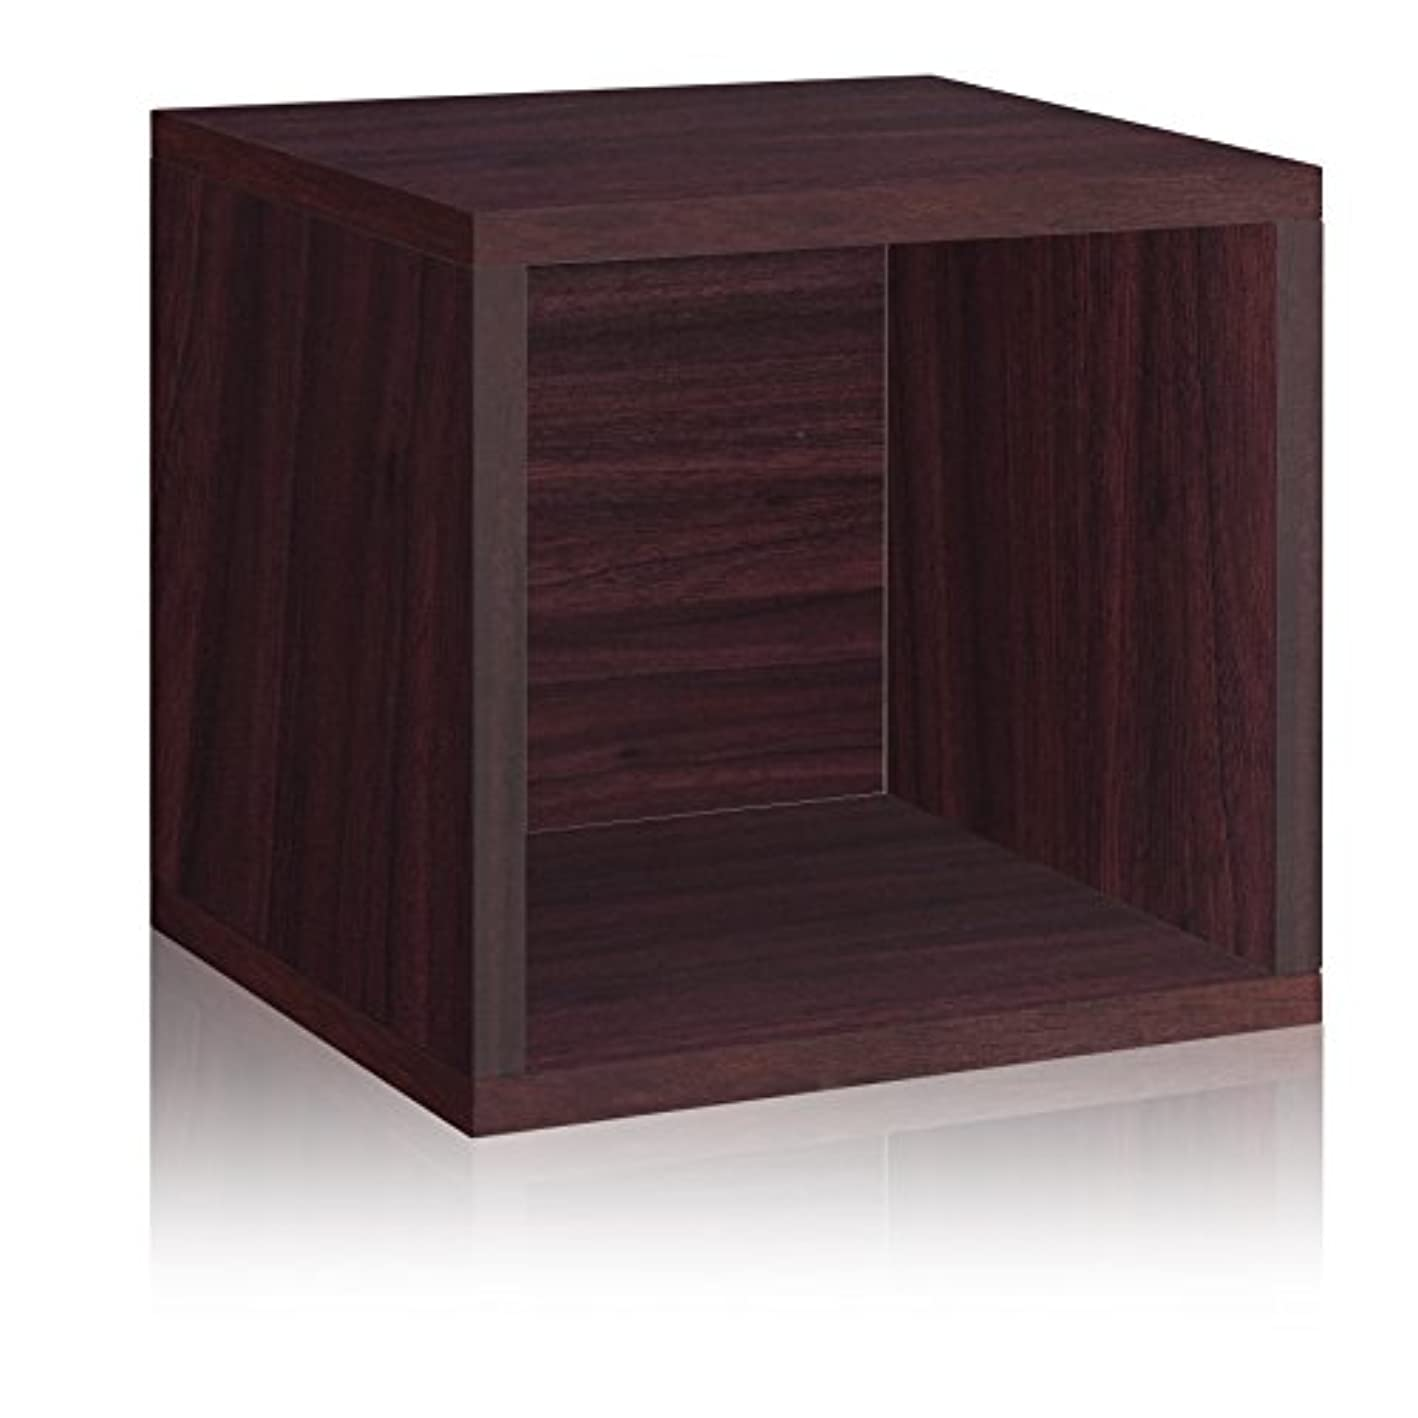 Way Basics 11.2 L x 13.4 W x 12.8 H Eco Stackable Storage Cube and Cubby Organizer, Espresso Wood Grain (Tool-Free Assembly and Uniquely Crafted from Sustainable Non Toxic zBoard paperboard)